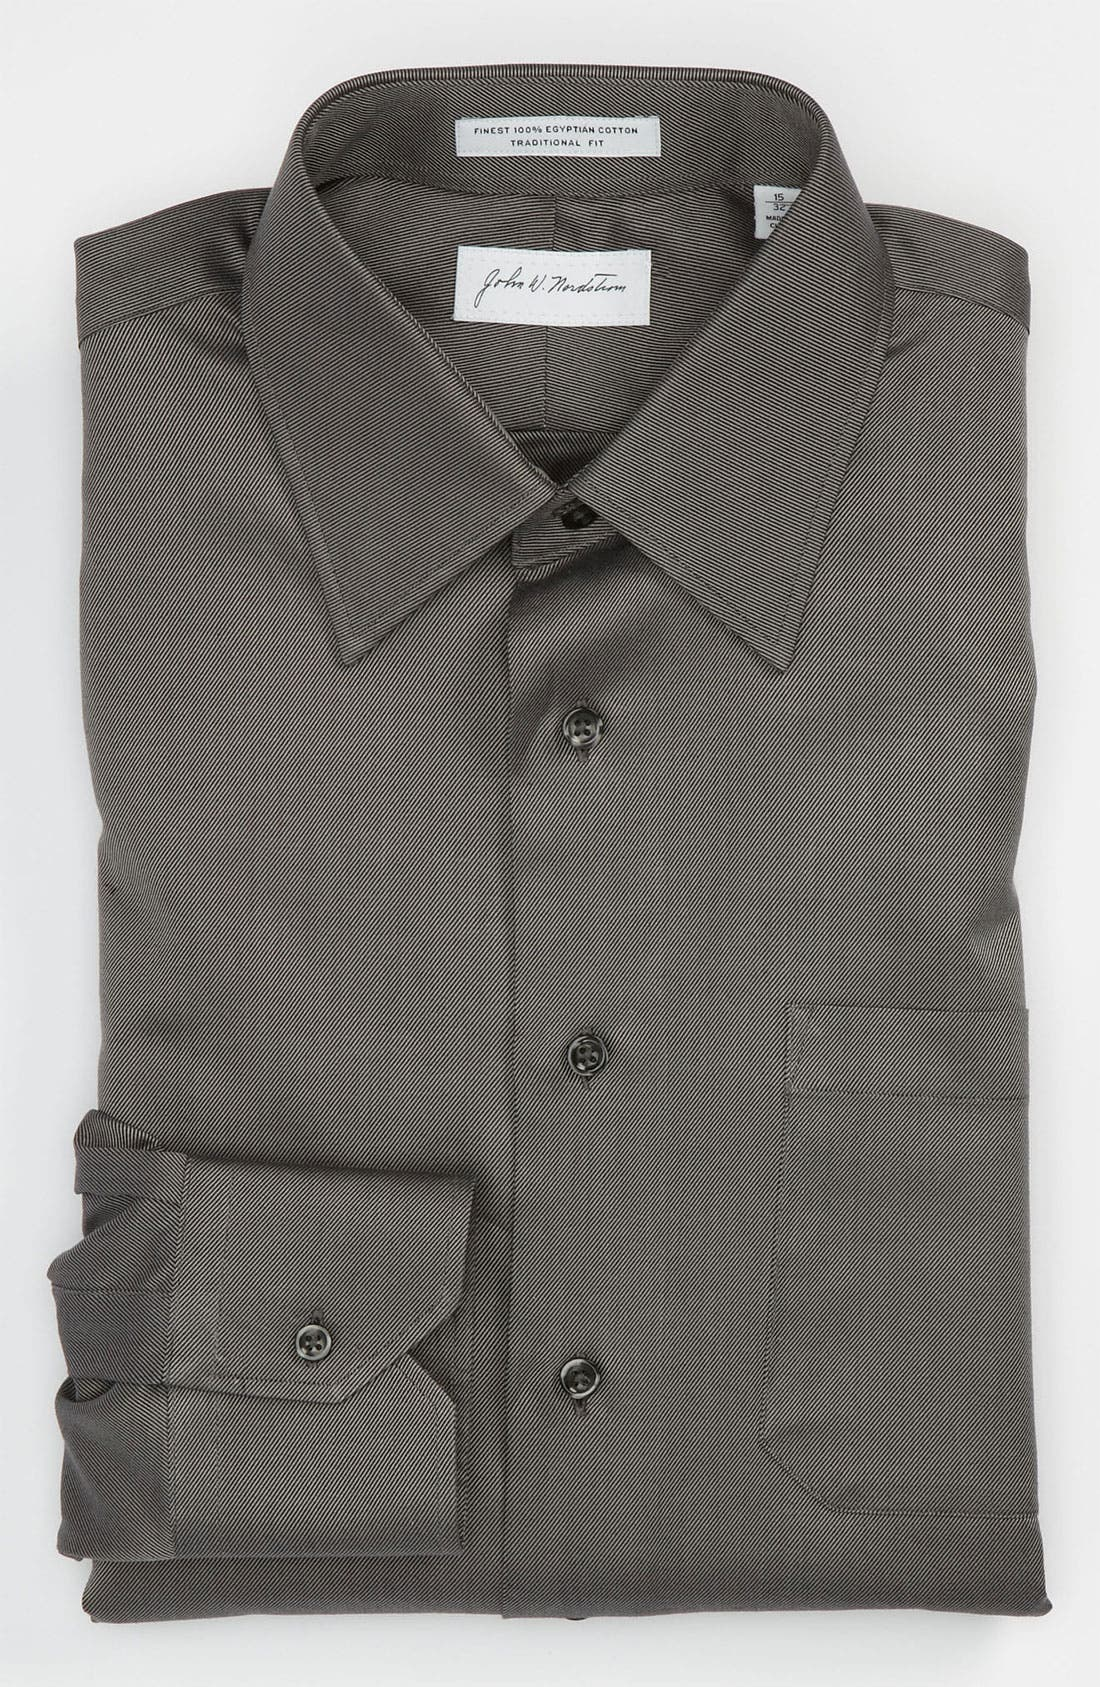 Alternate Image 1 Selected - John W. Nordstrom Traditional Fit Dress Shirt (Online Only)